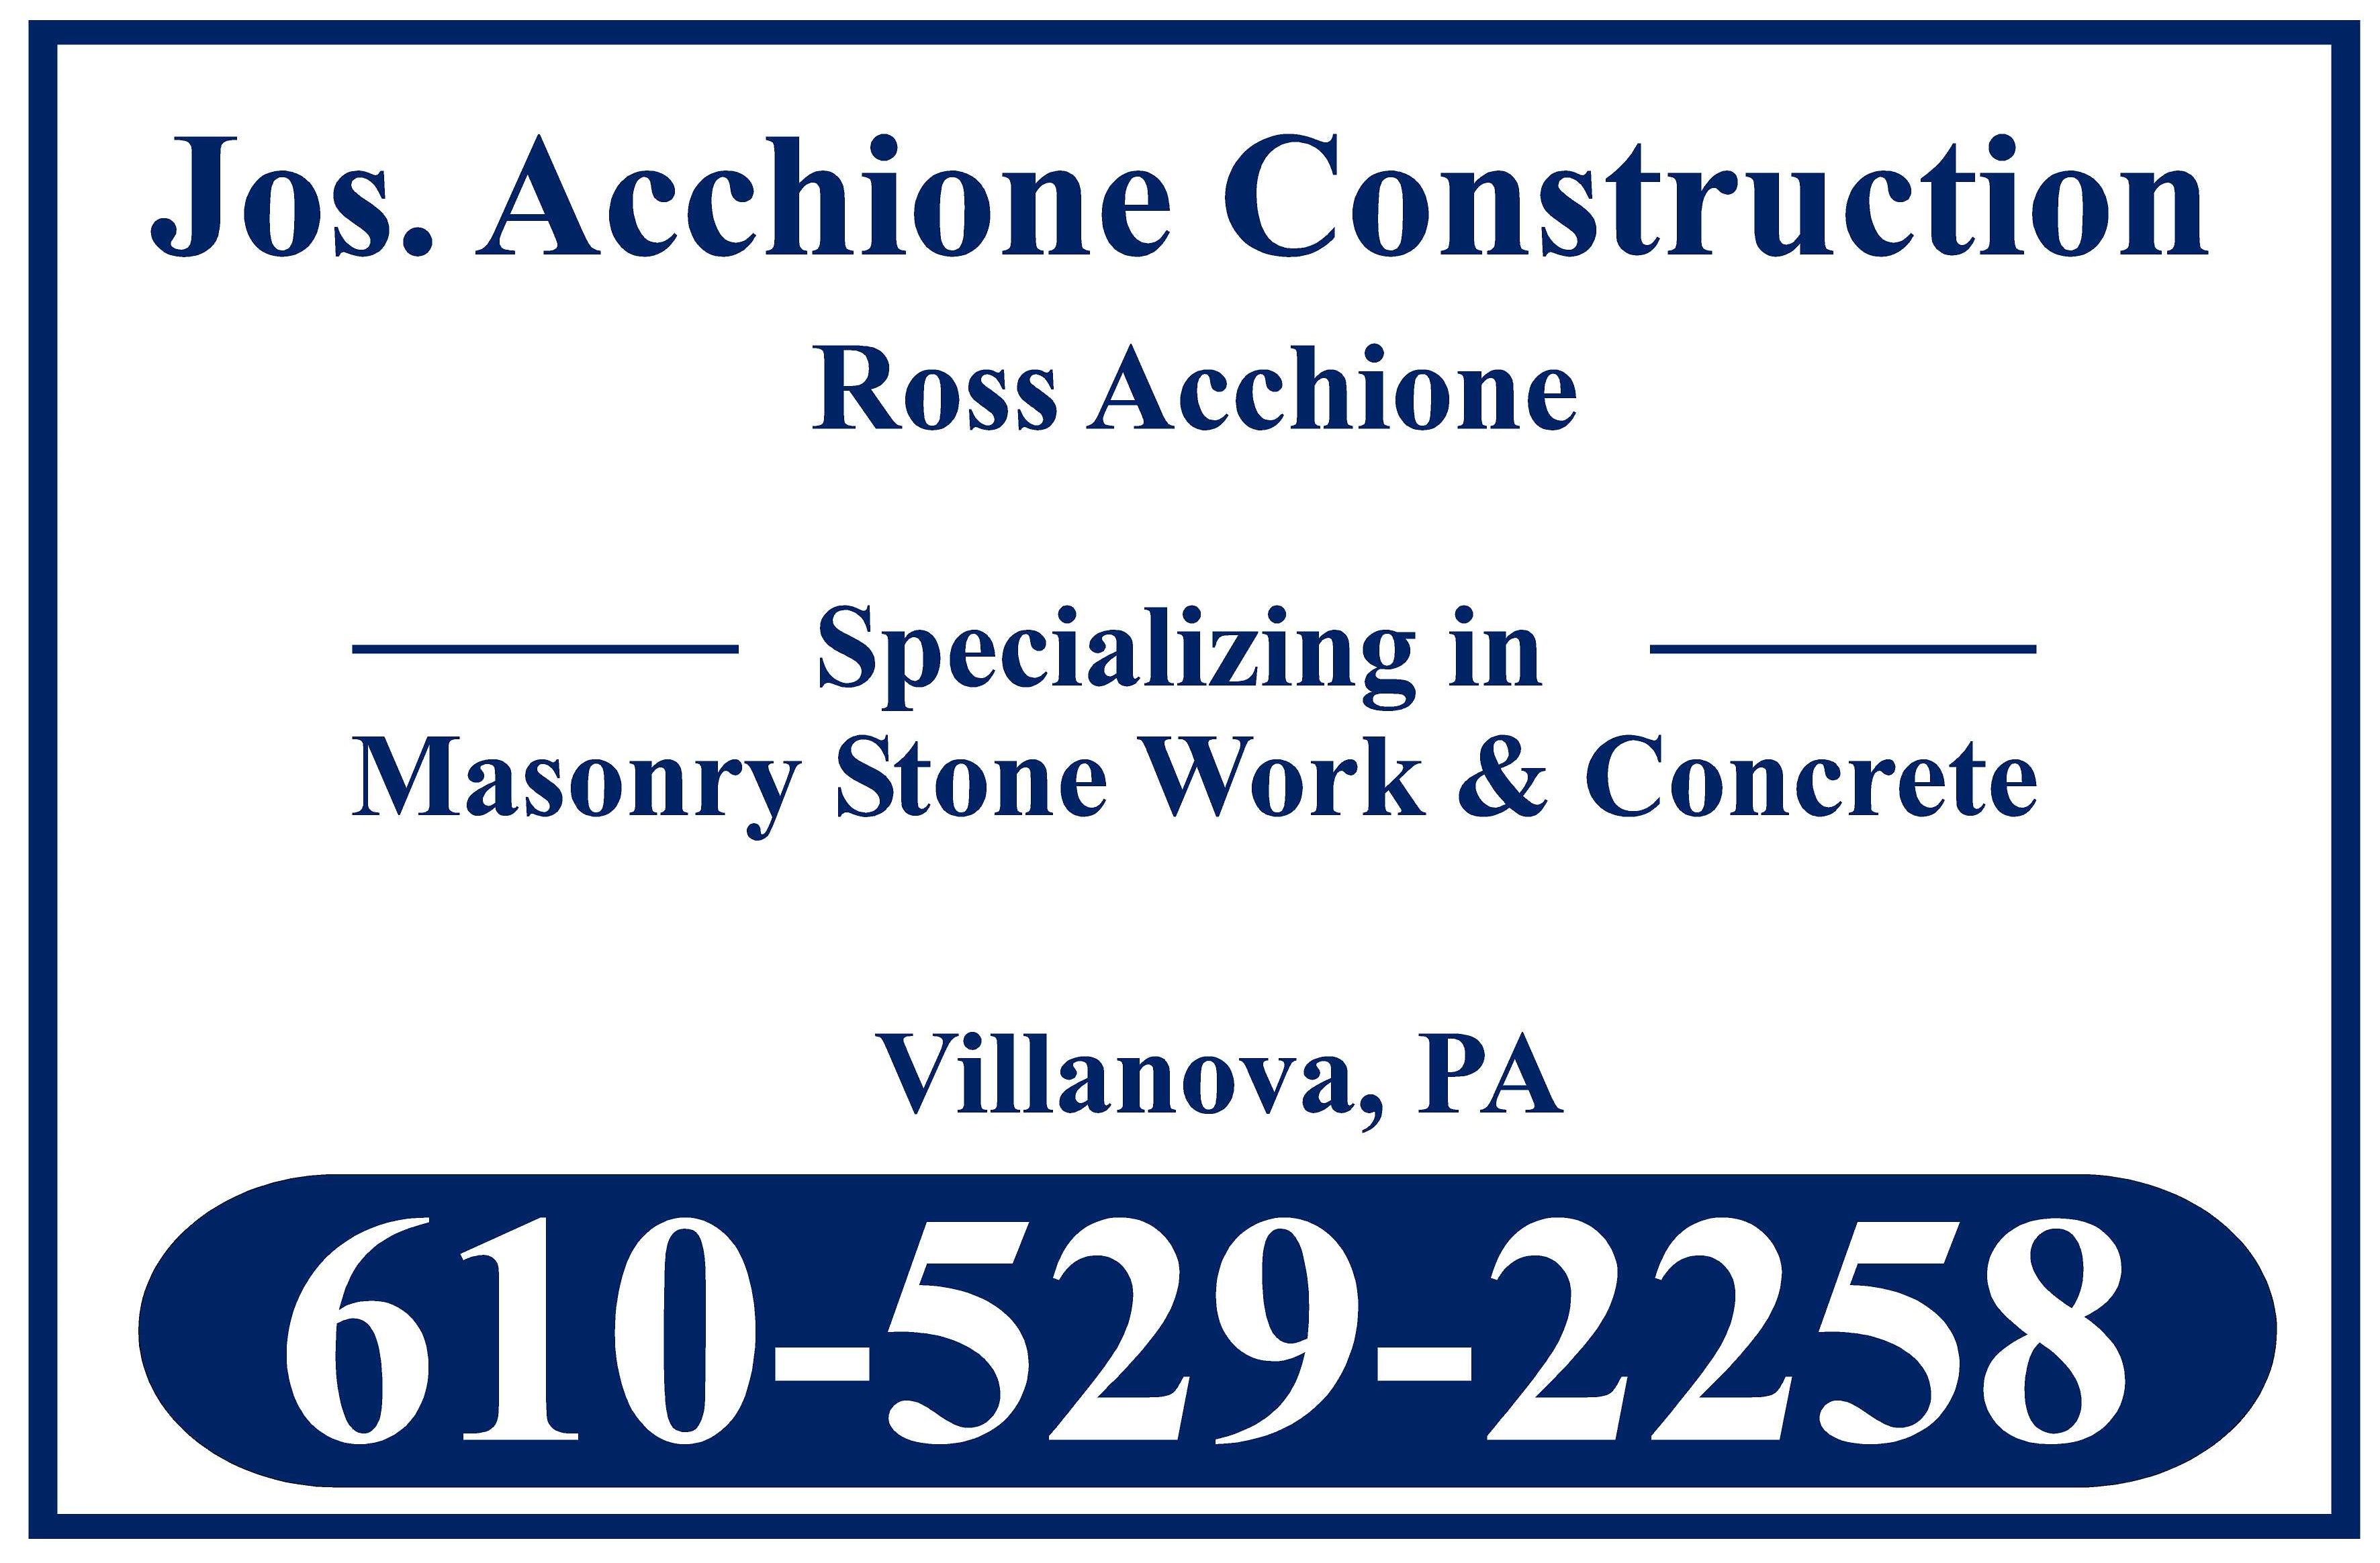 Jos_acchione_construction_-_for_website